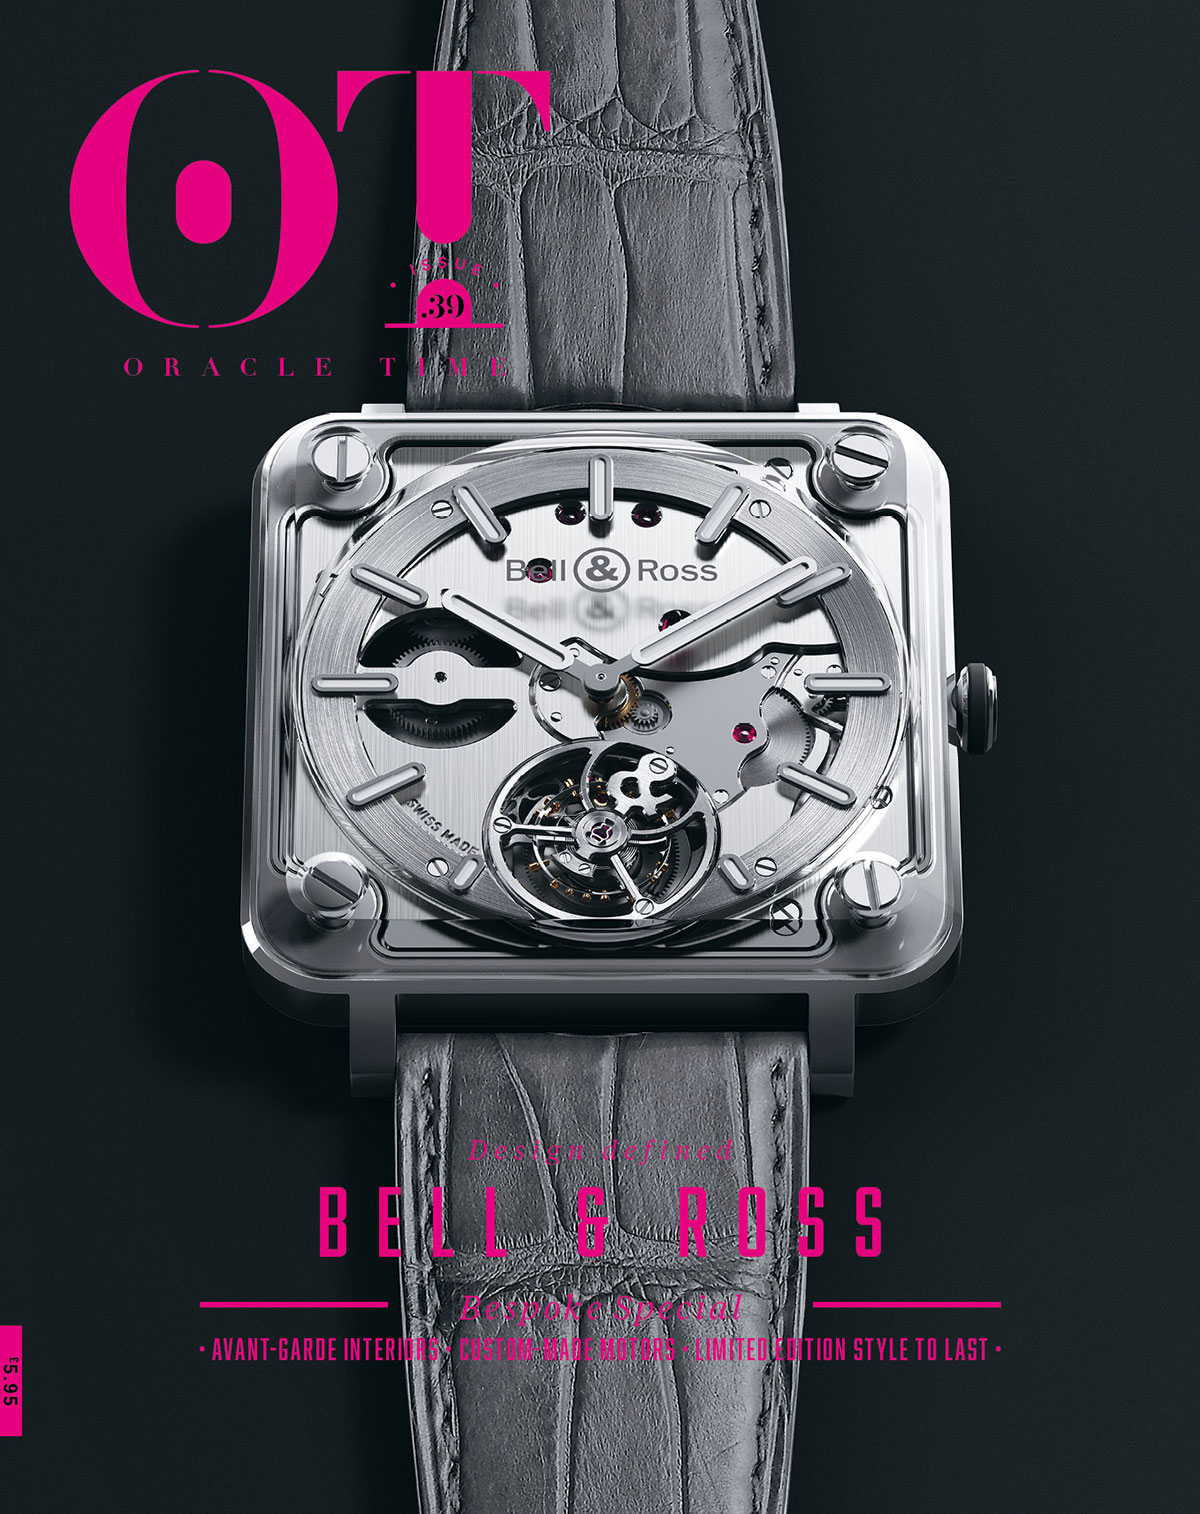 Oracle Time Issue 38 Cover